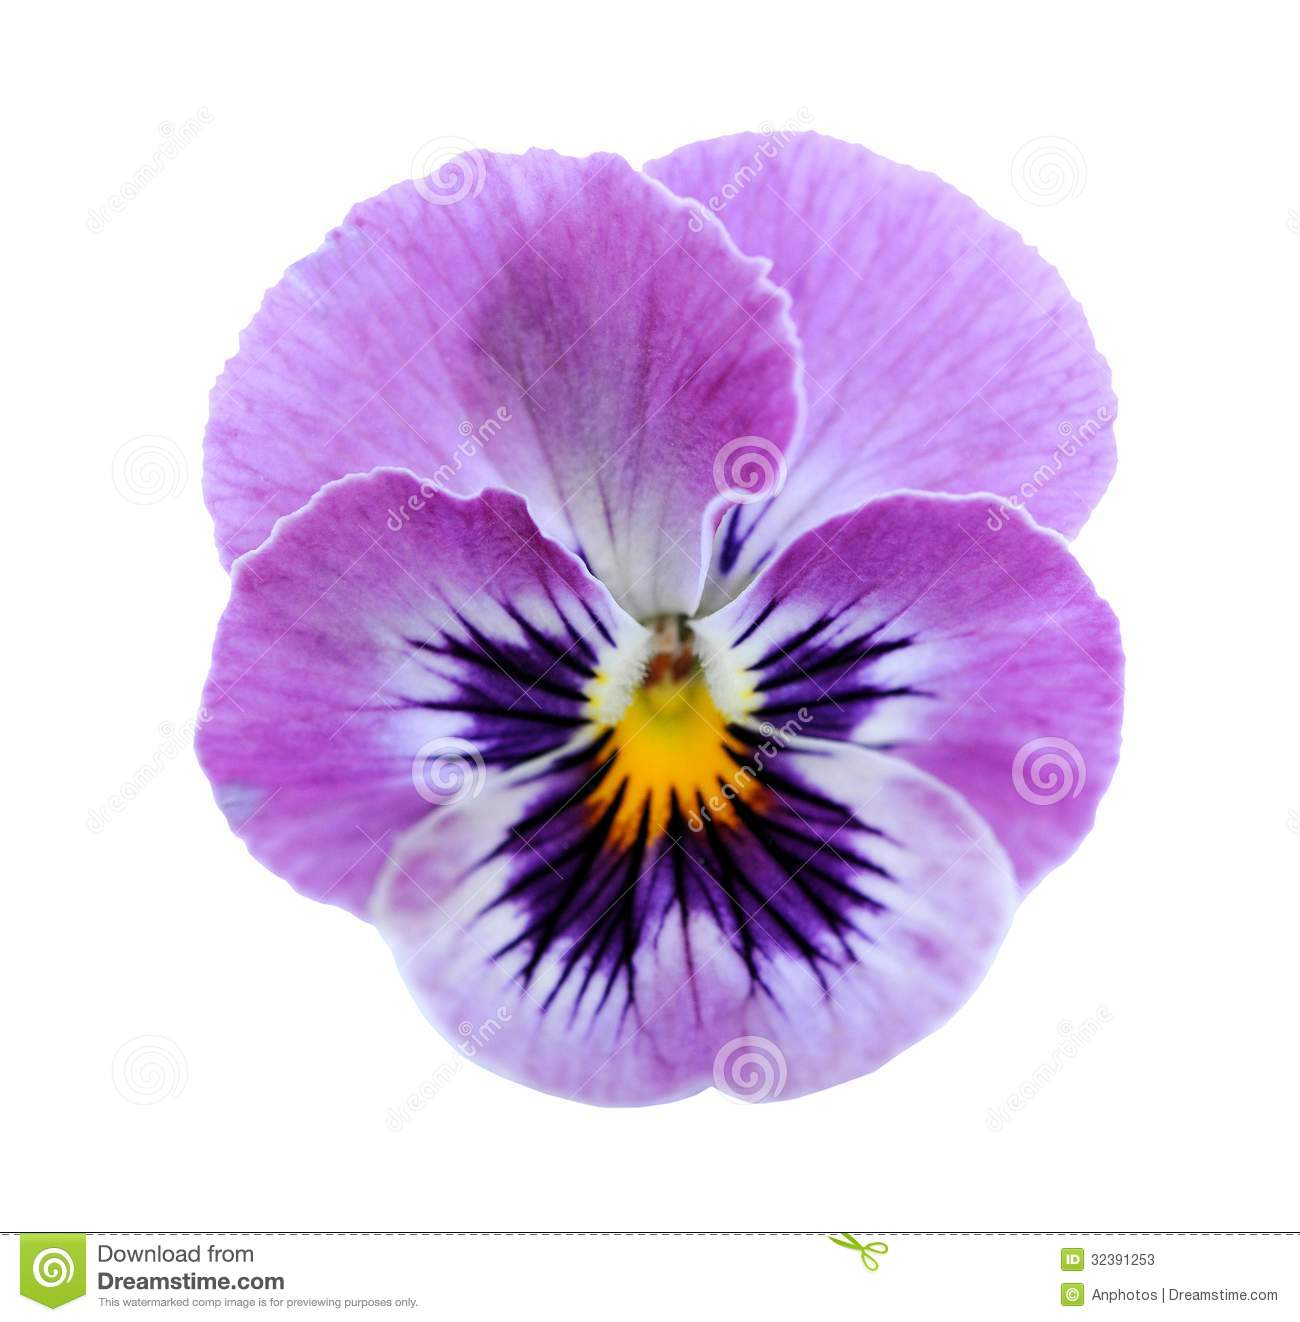 Pansy flower stock image image of nature purple bloom 32391253 pansy flower isolated on white background mightylinksfo